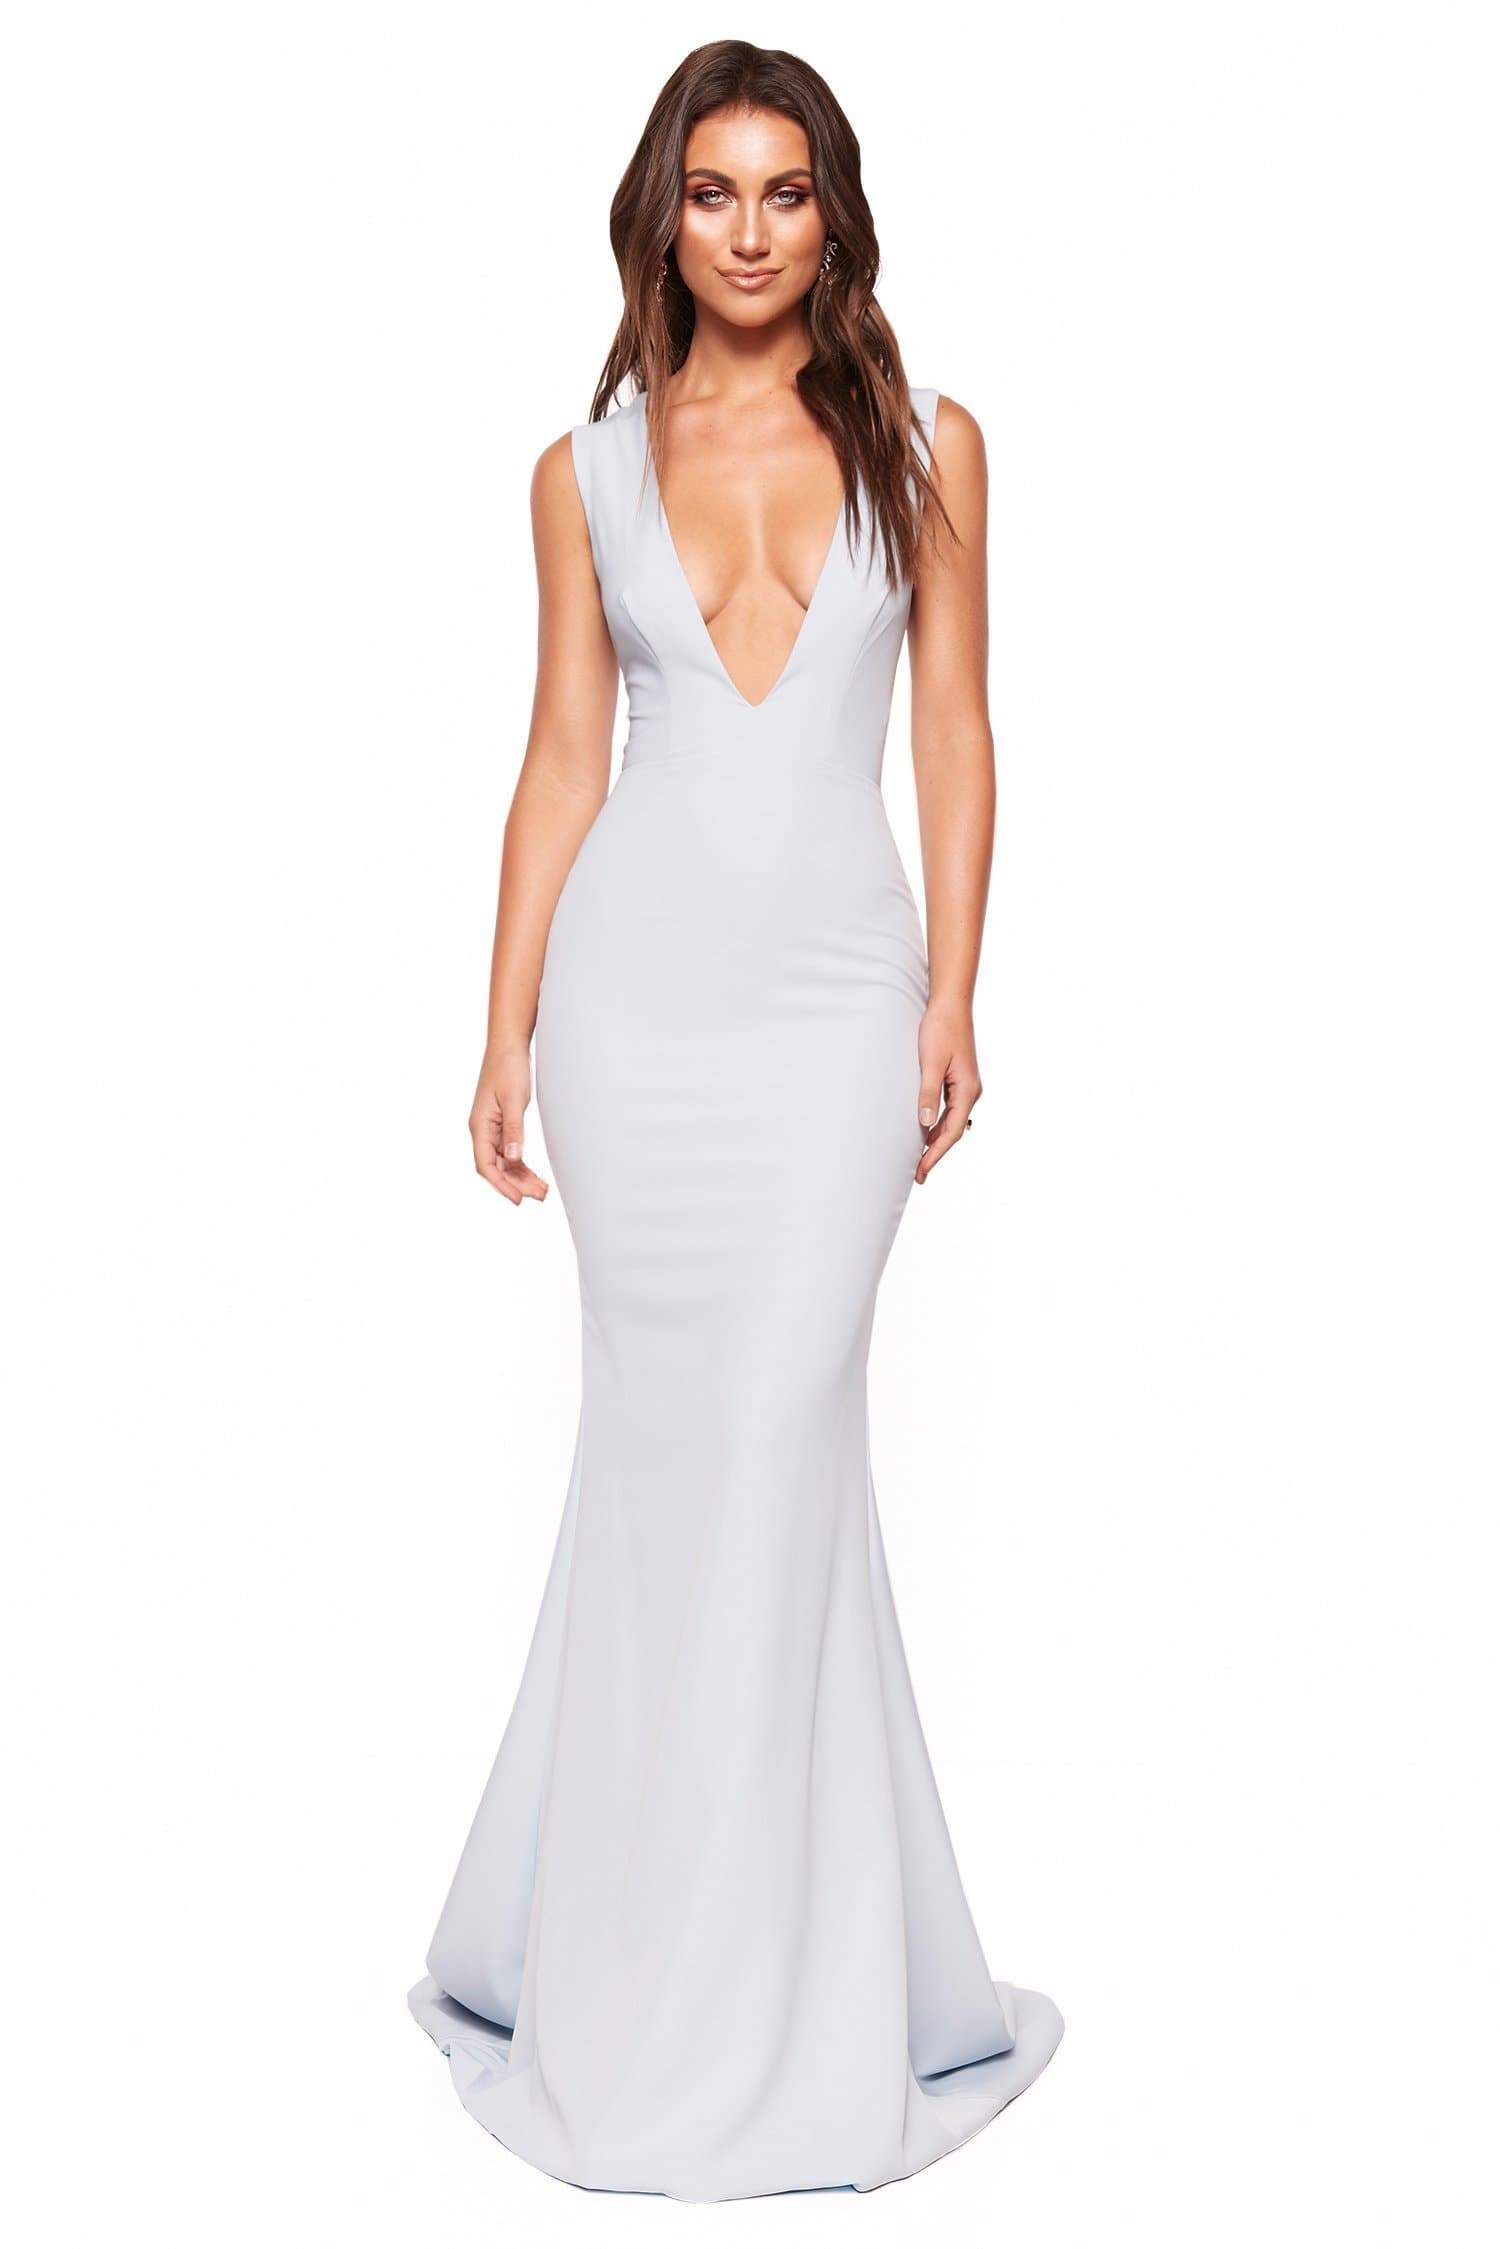 A&N Luxe Scarlett - Sky Blue Crepe Gown with Plunge Neck & Back Detail